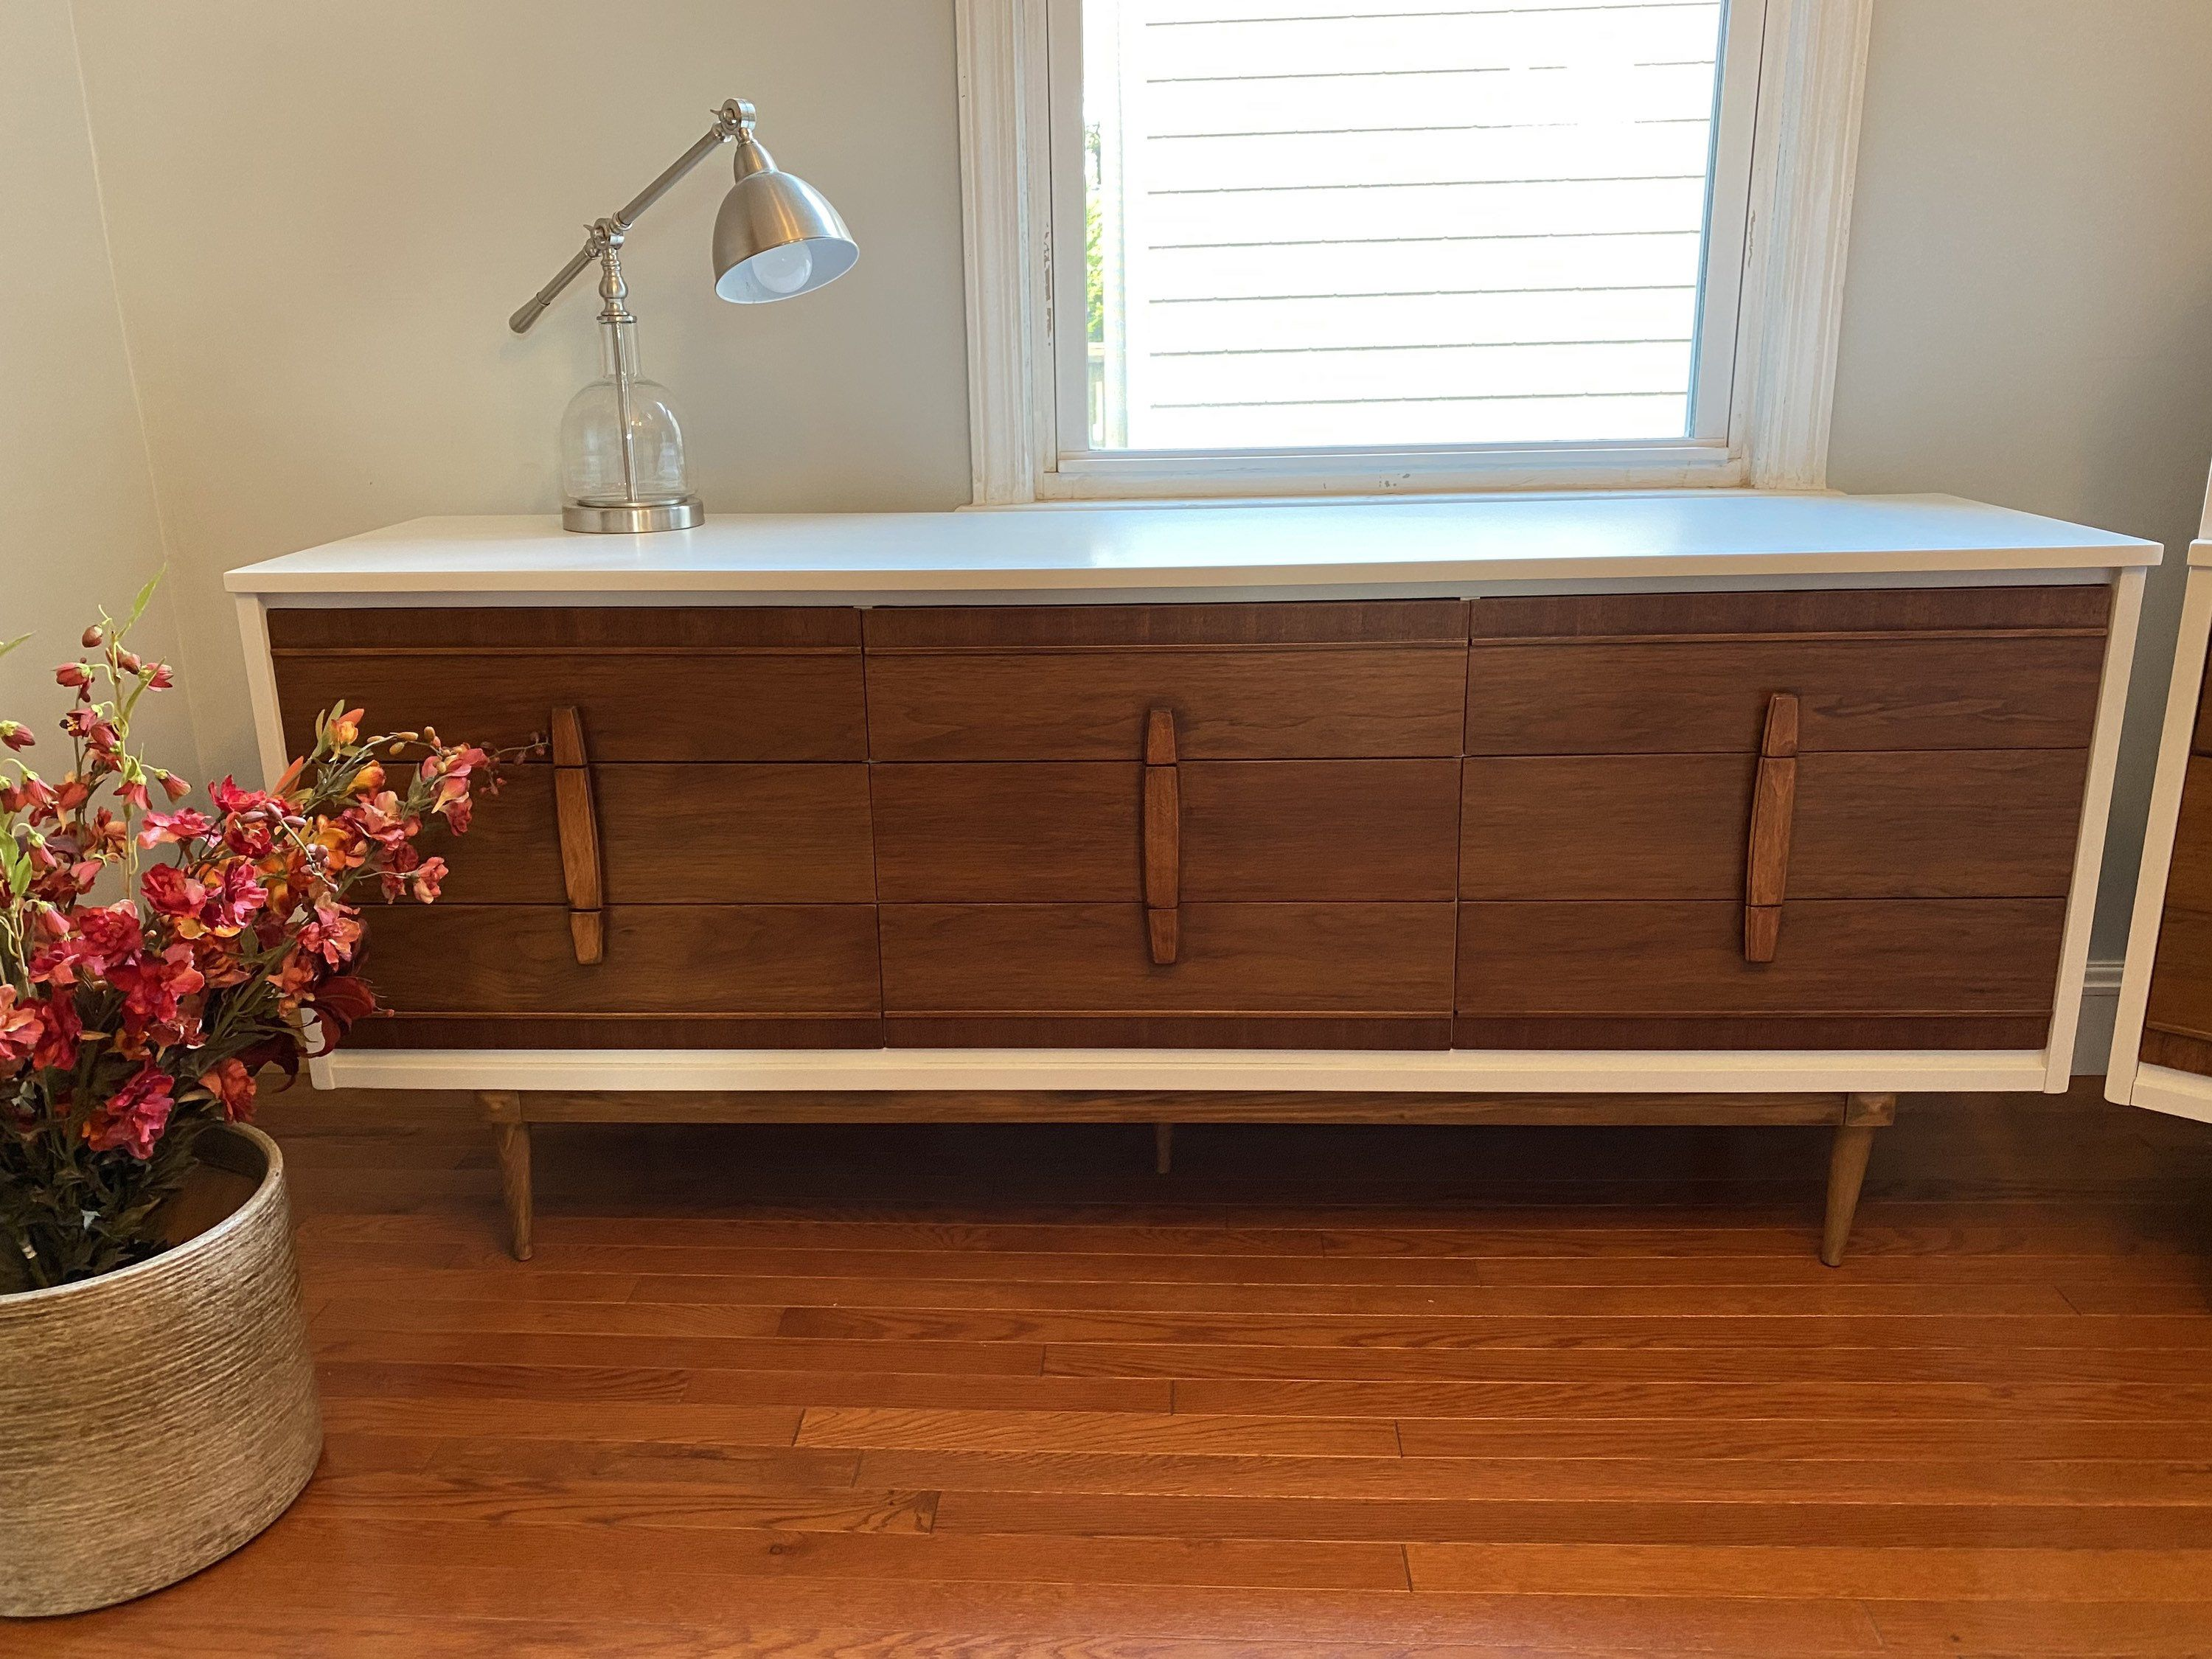 Excited to share the latest addition to my #etsy shop: MCM long dresser #midcentury #furniture #mcm #midcenturymodern #antique